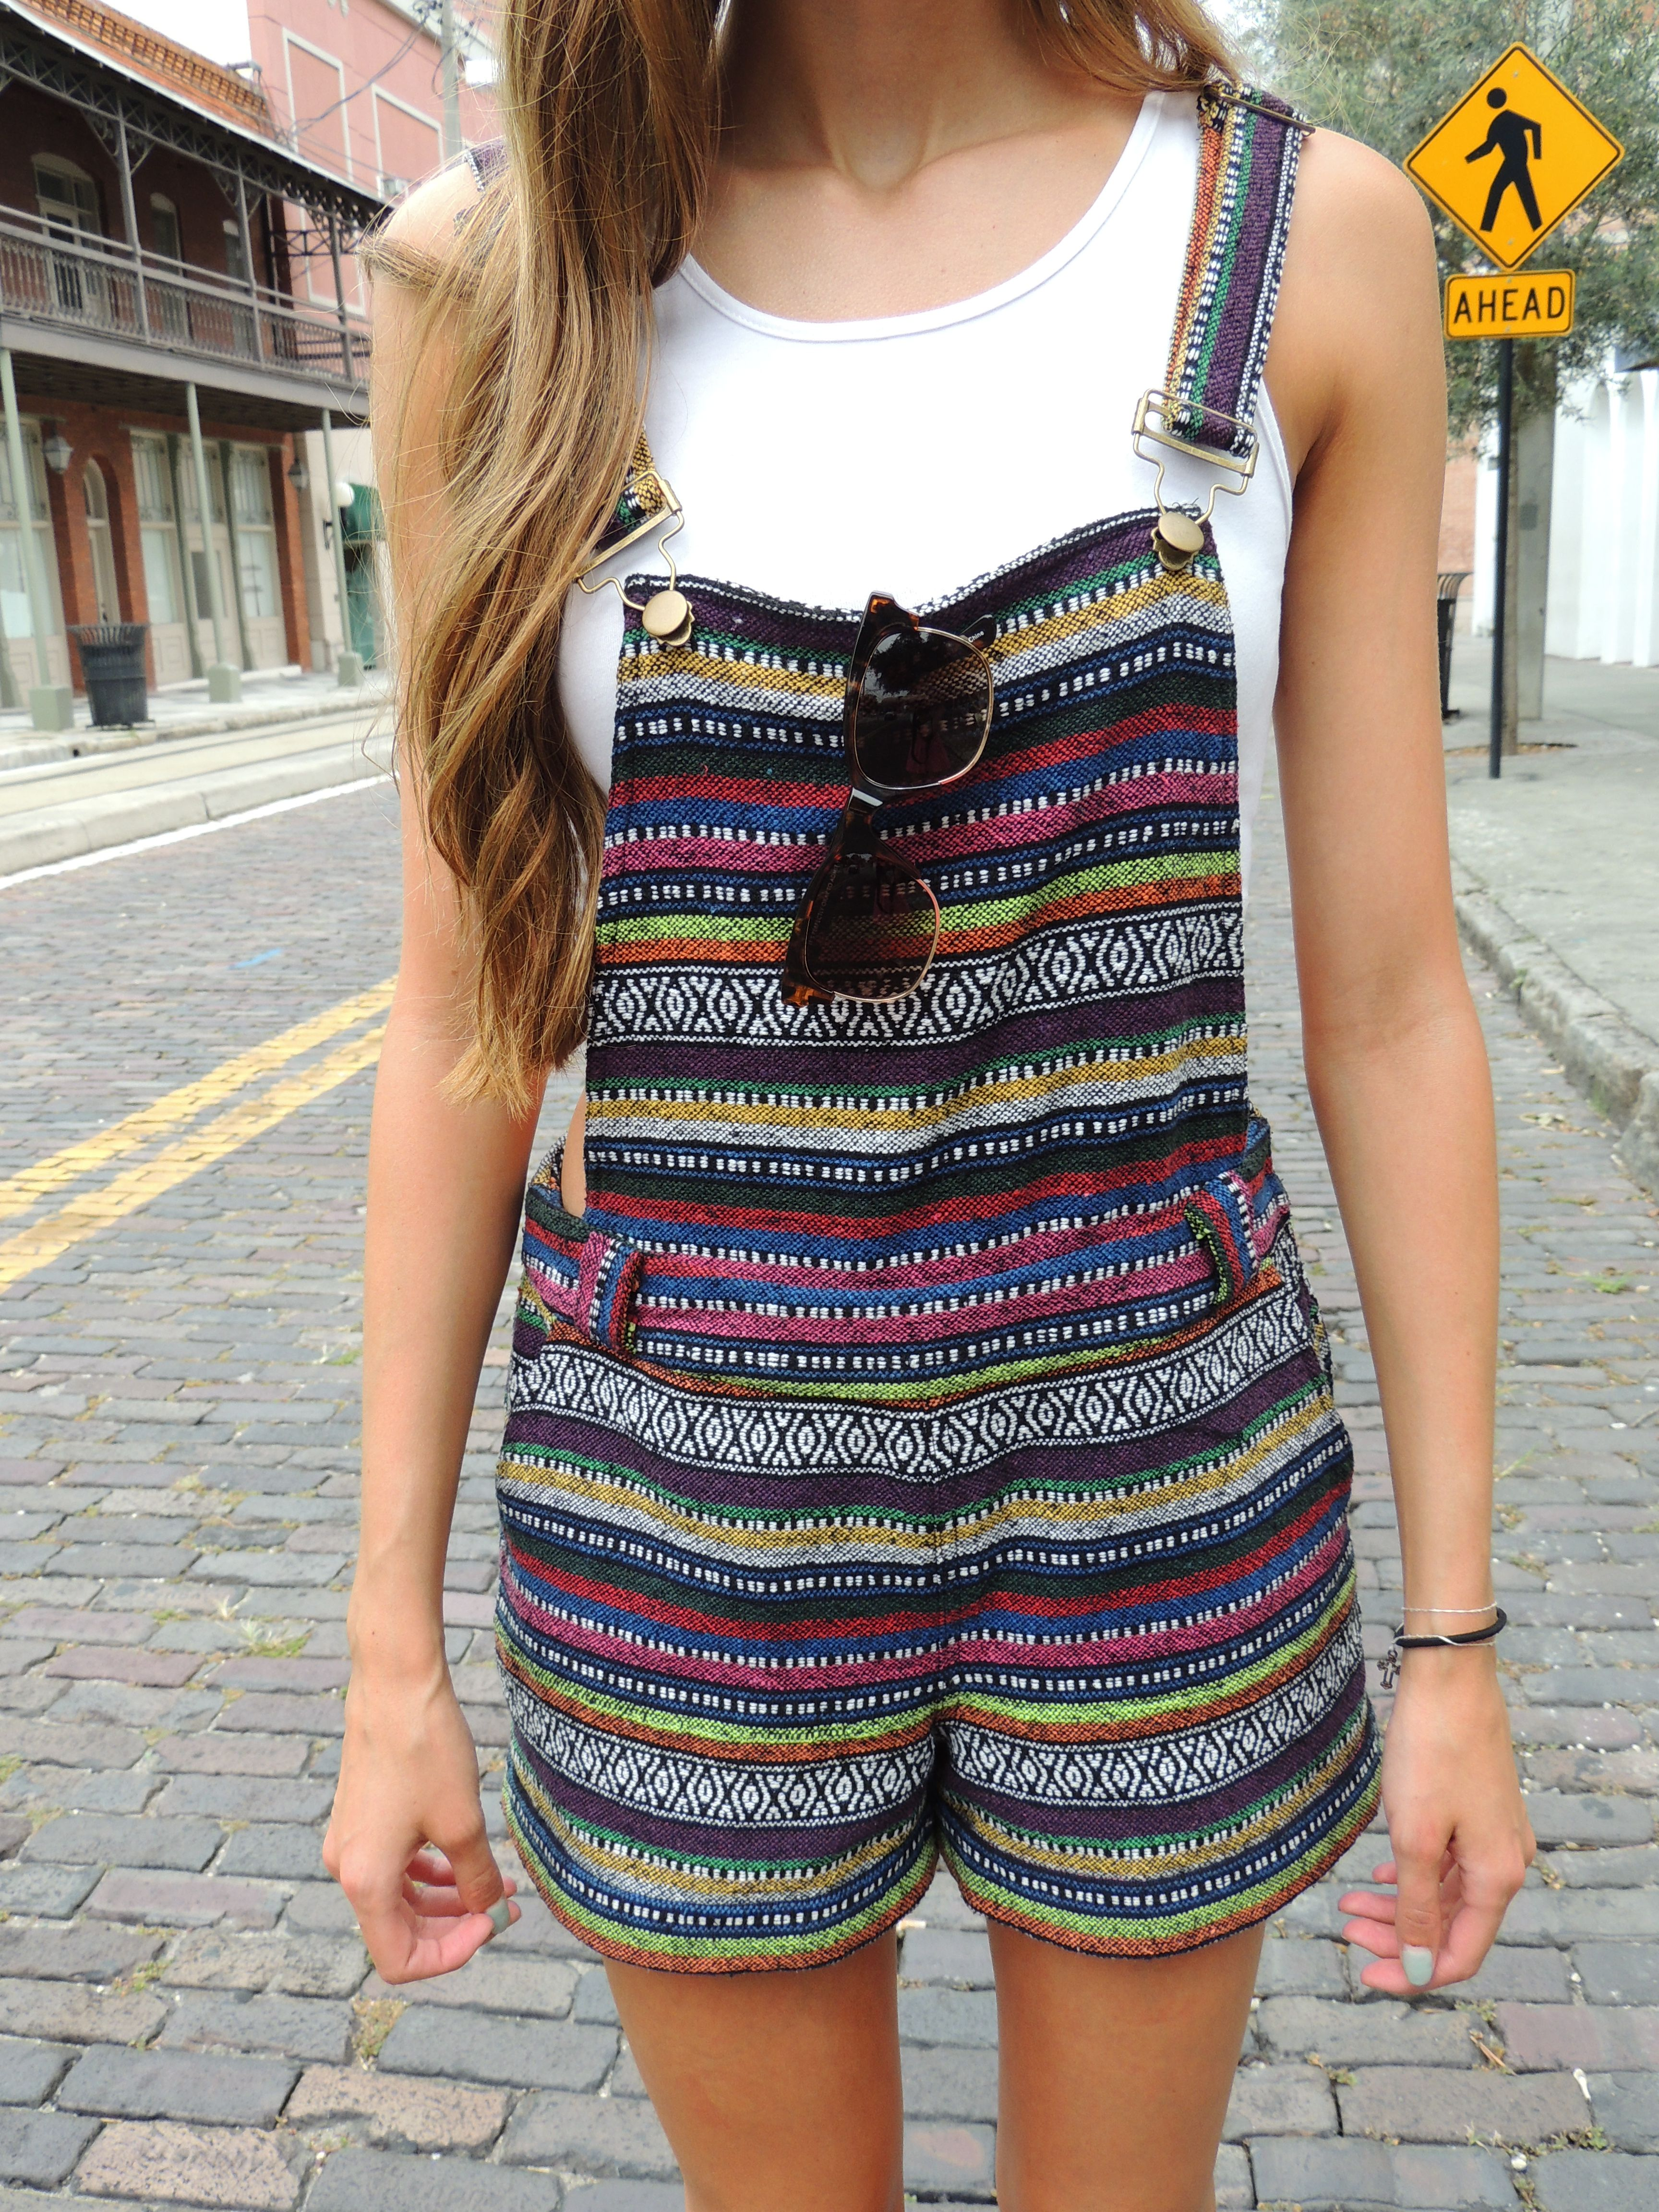 Read about these tribal print overalls on my personal style blog: http://fringeandfreespirits.wordpress.com/2014/06/04/outfit-of-the-day-tribal-overalls/ #tribal #overalls #Forever21 #beanie